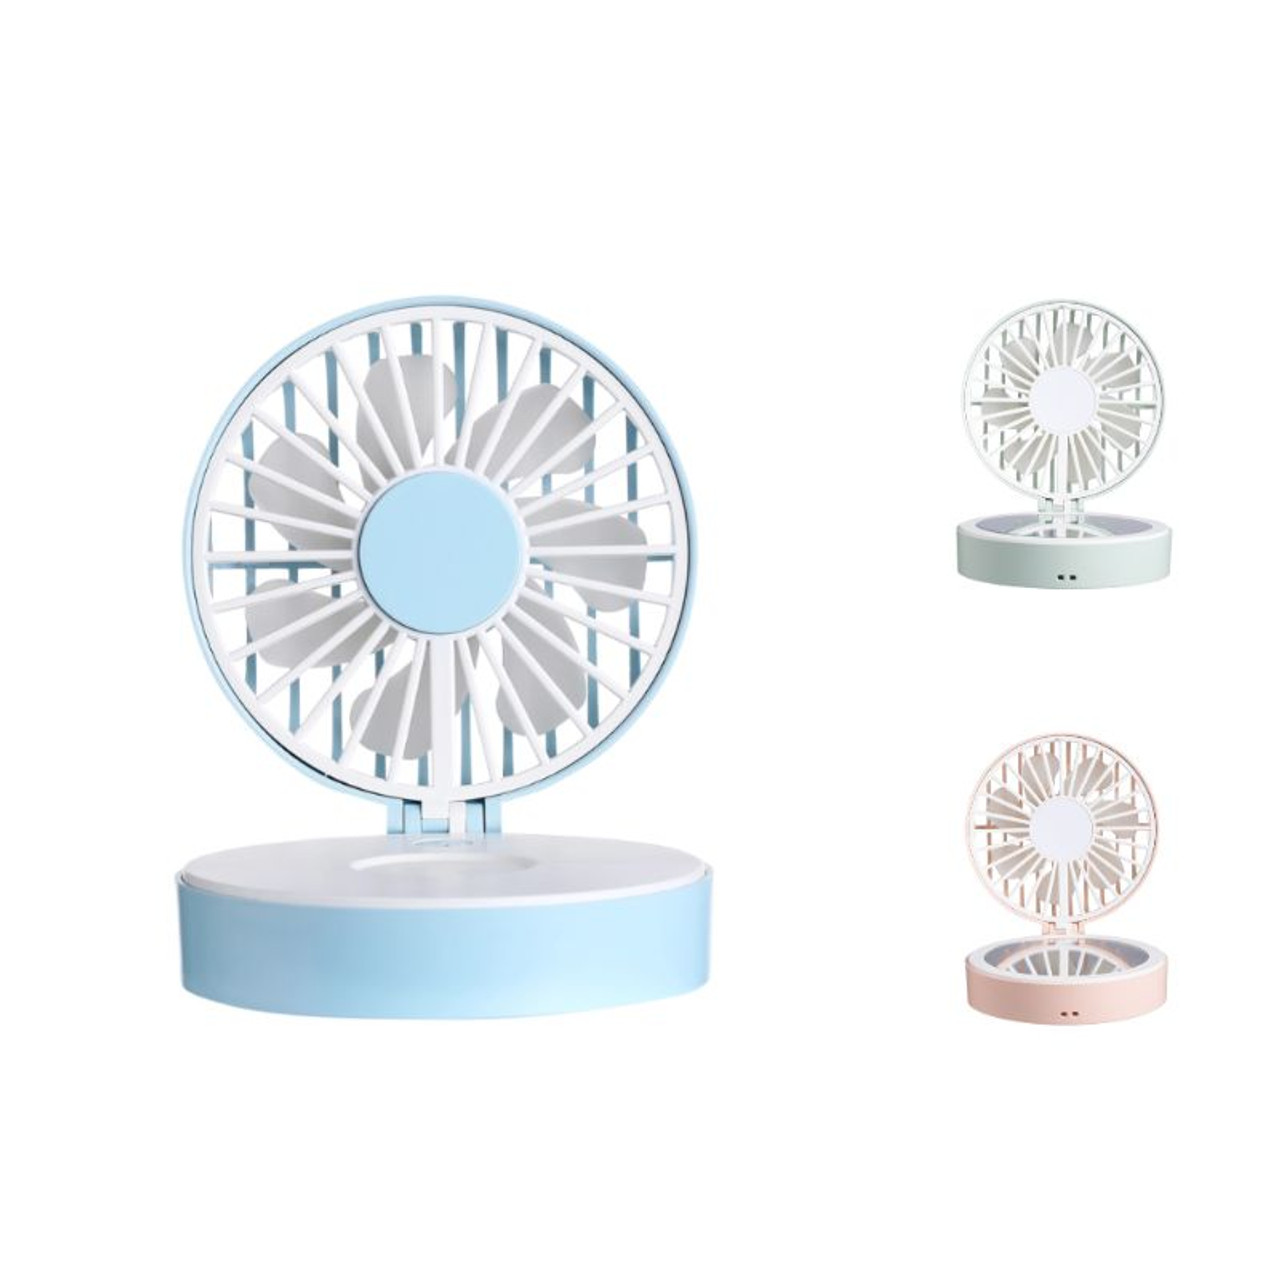 Rechargeable Compact Fan with Mirror